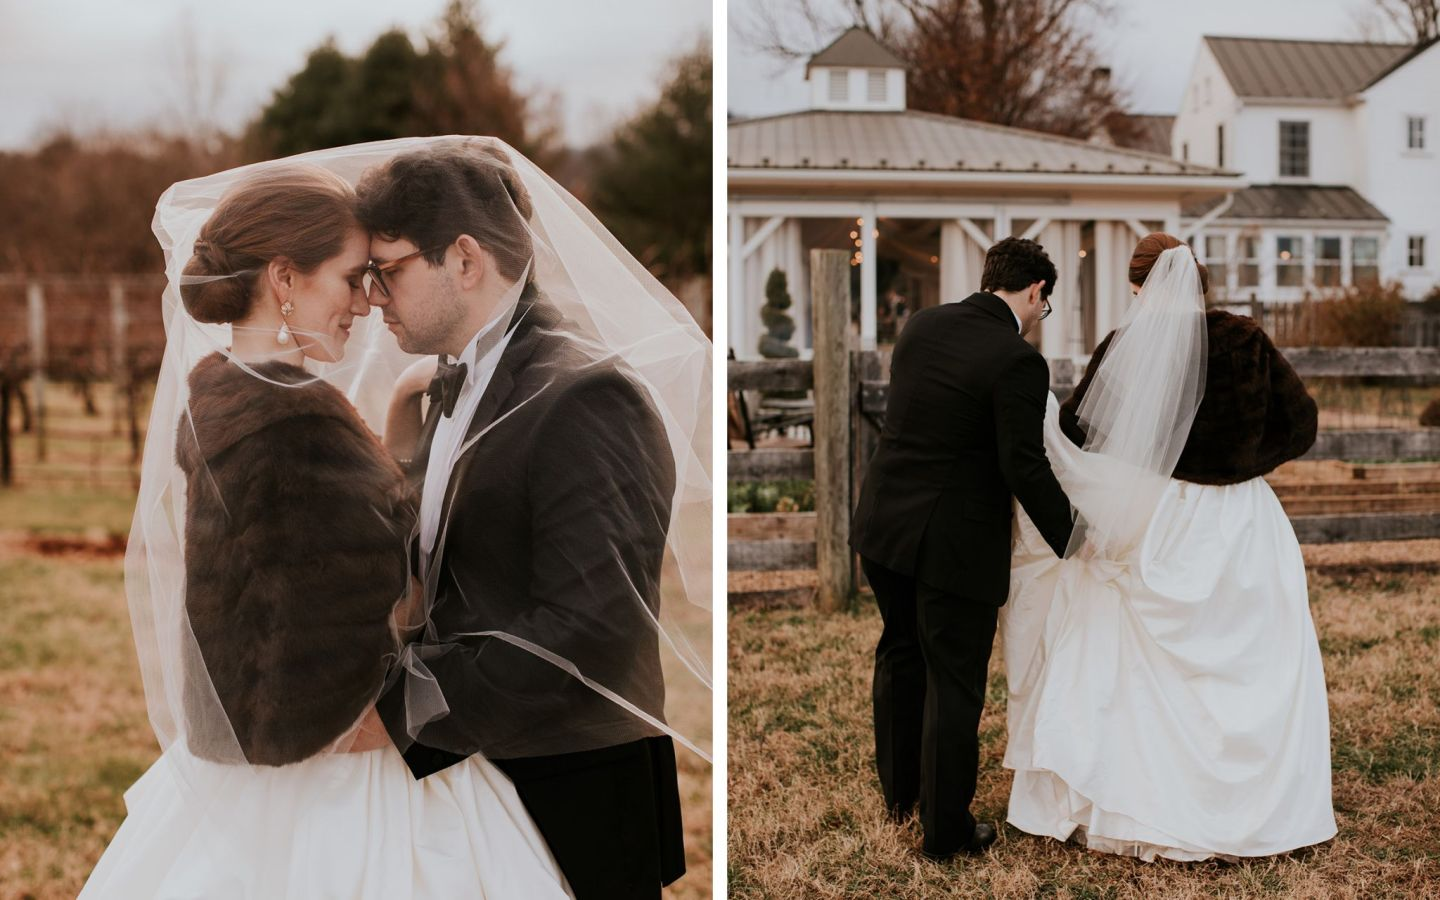 charlottesville bride - charlottesville wedding - augusta jones wedding dress - augusta jones paz - winter bride - farmhouse at veritas wedding - winter bride fur